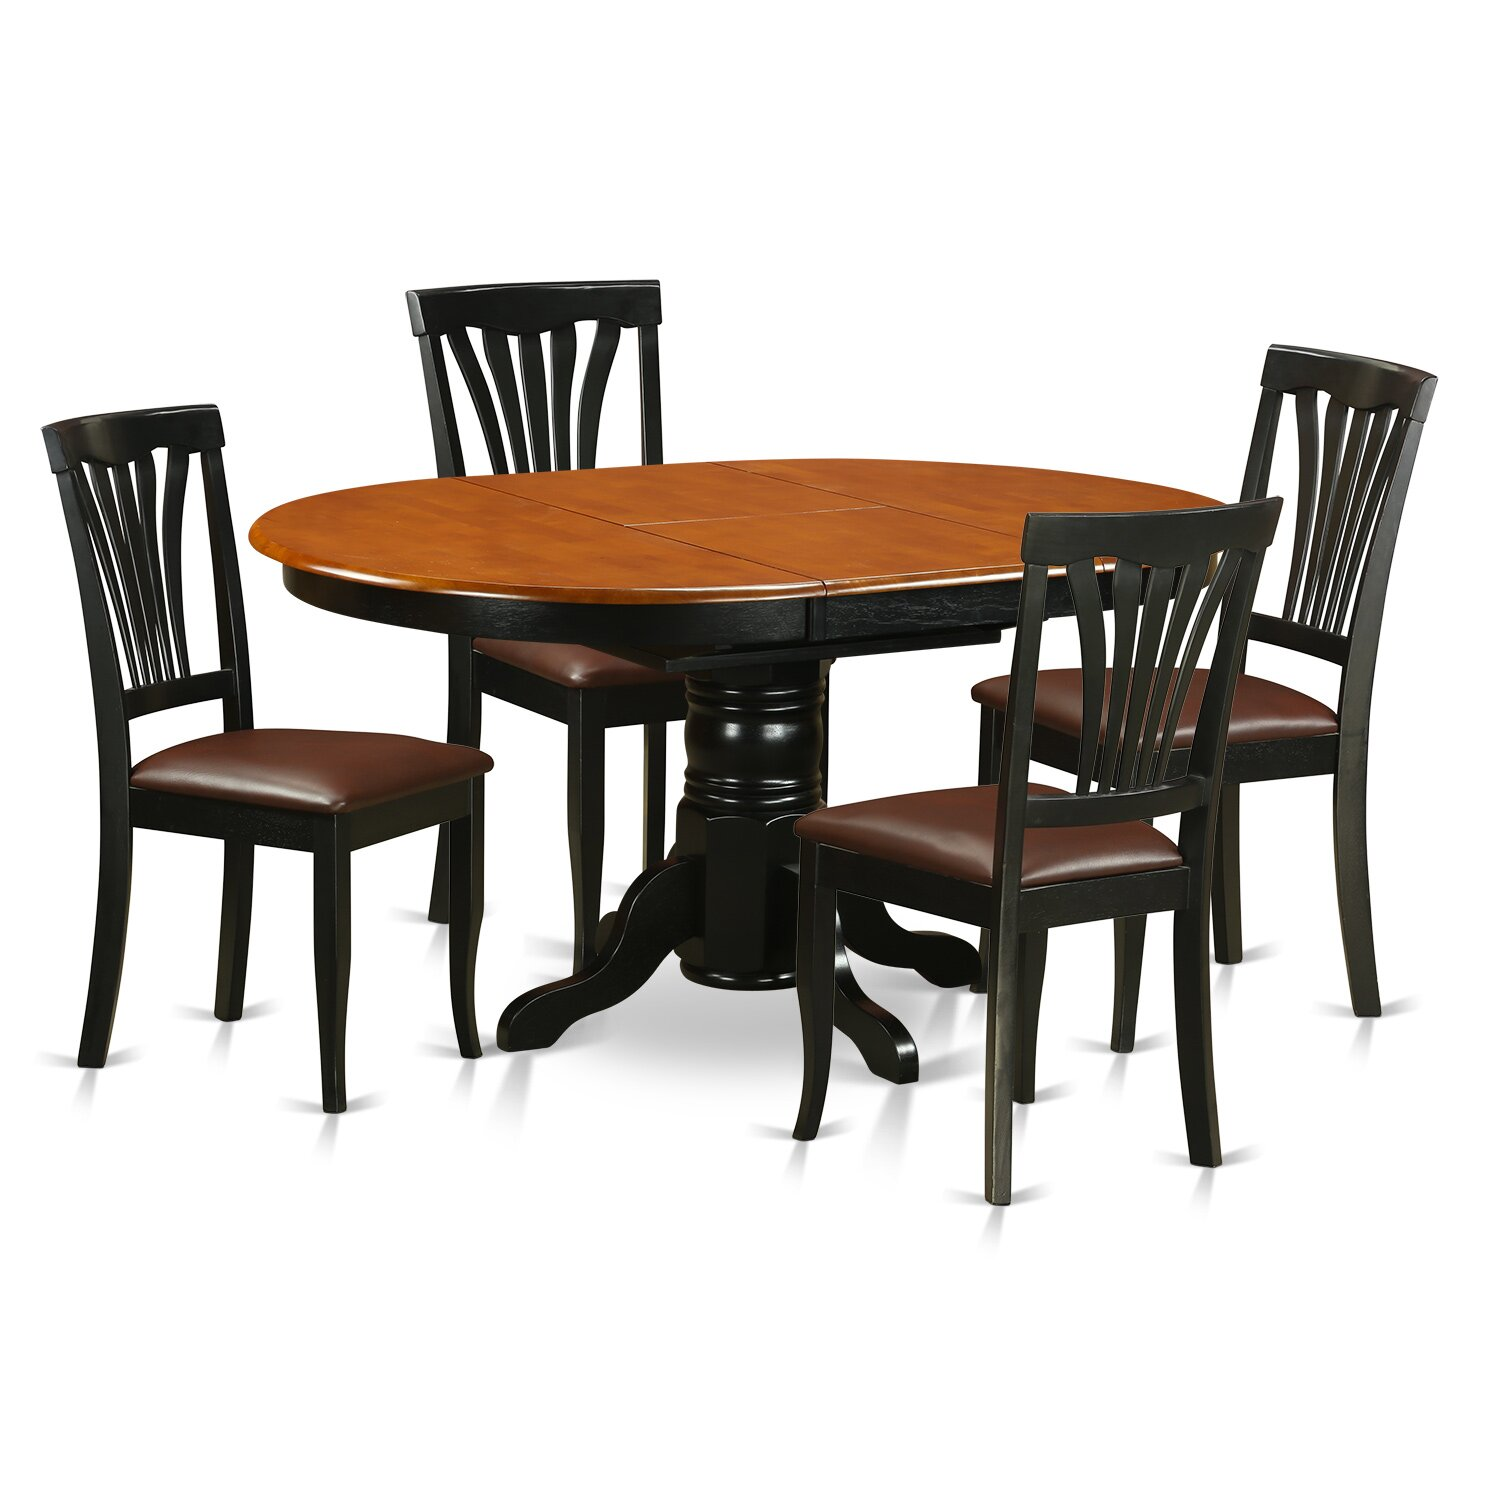 Wooden importers avon 5 piece dining set reviews for Wooden dining set